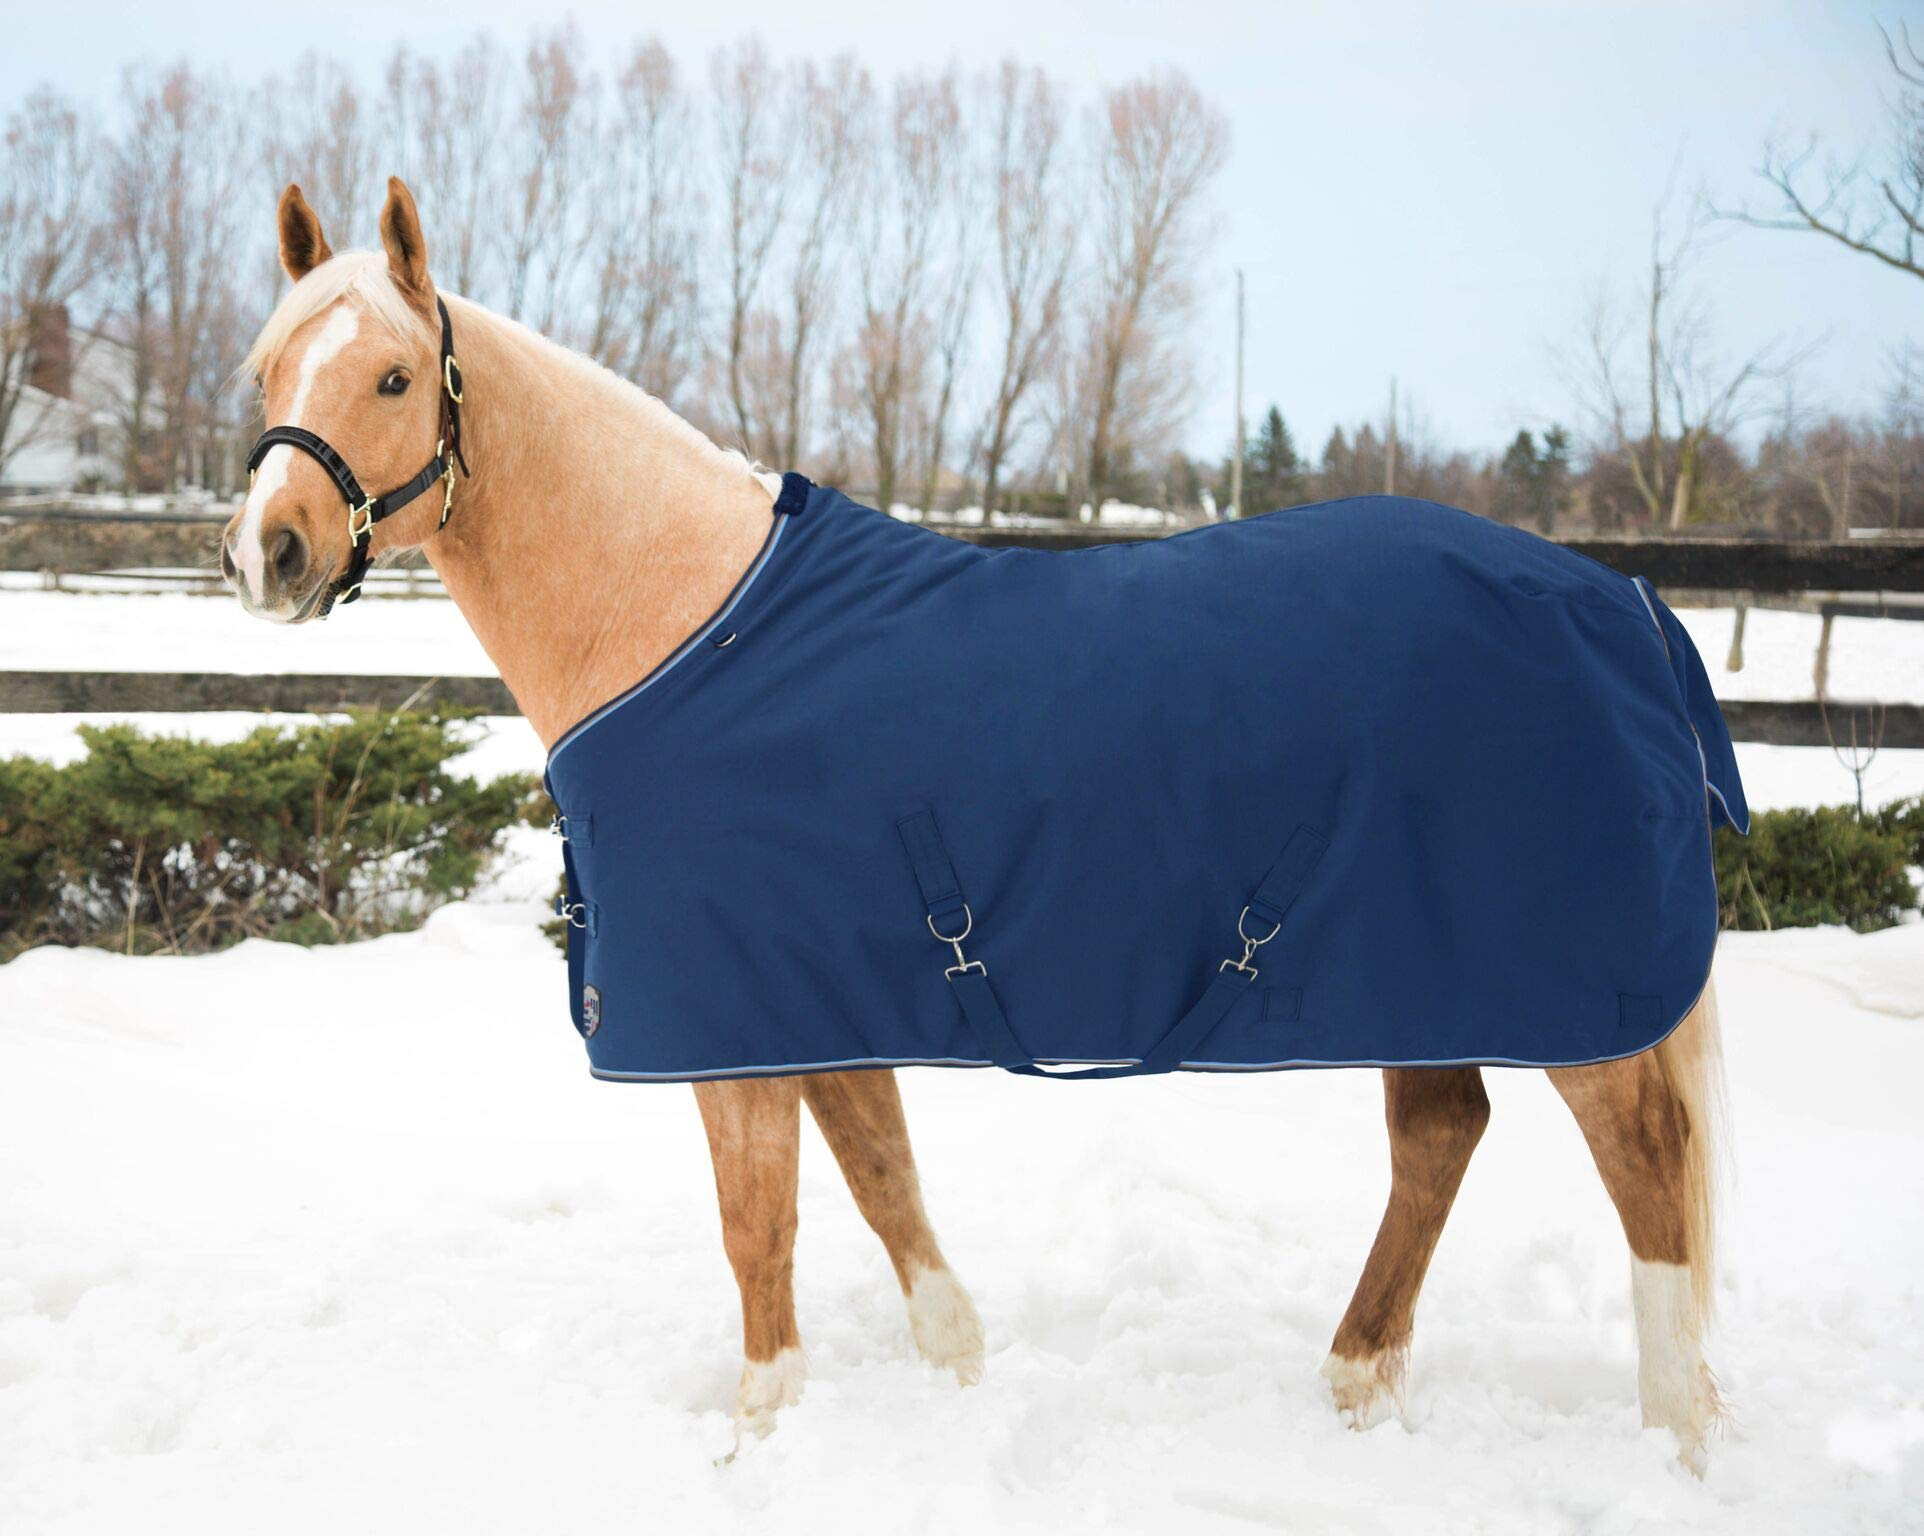 Kensington All Around 1200 Denier Light Weight Waterproof and Breathable Turnout 80g Blanket (Size 75, Kentucky Blue) by Kensington Protective Products